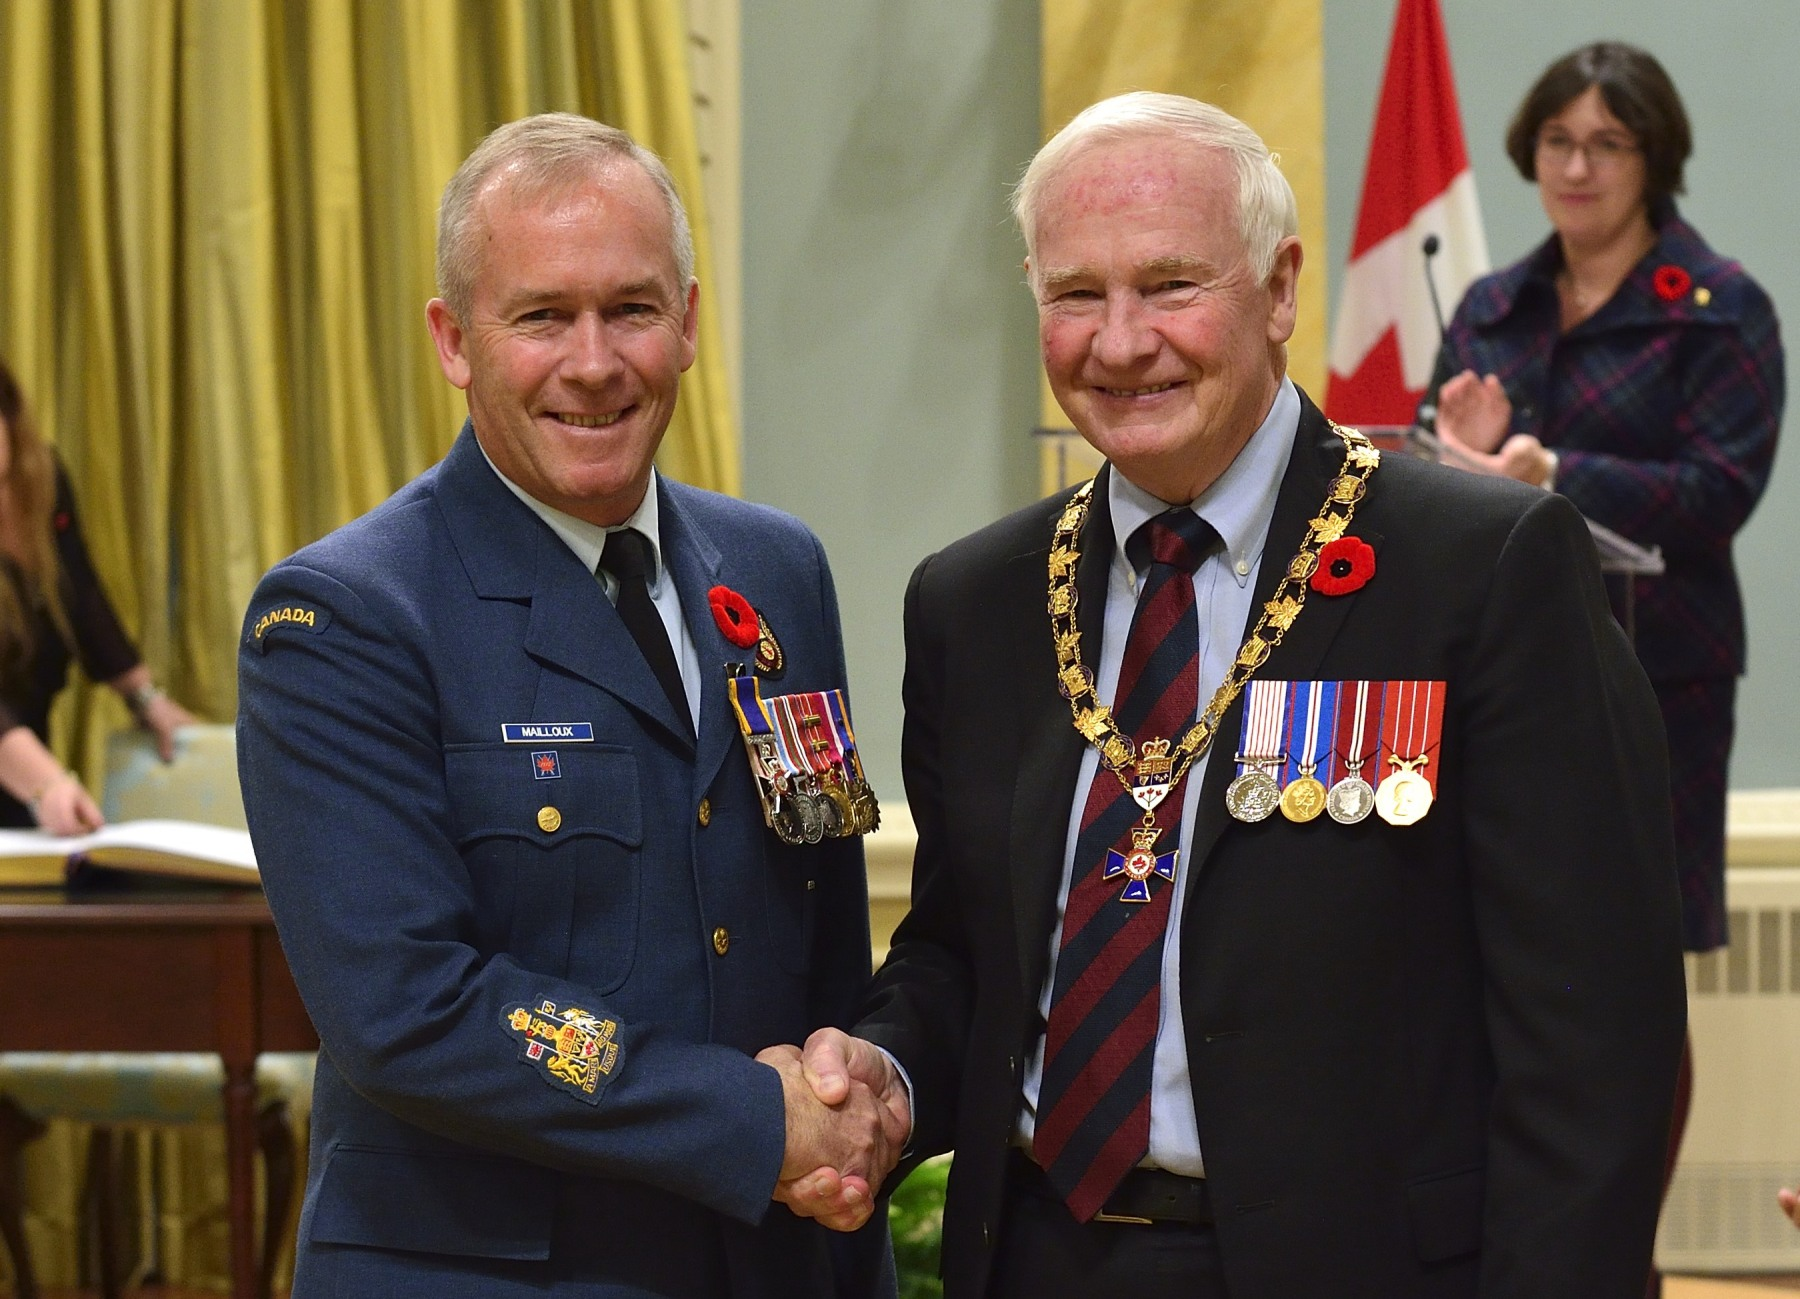 His Excellency presented the Order of Military Merit at the Member level (M.M.M.) to Chief Warrant Officer Denis Mailloux, M.M.M., C.D., North American Aerospace Defence Command Outside Canada, Colorado Springs, CO, U.S.A.